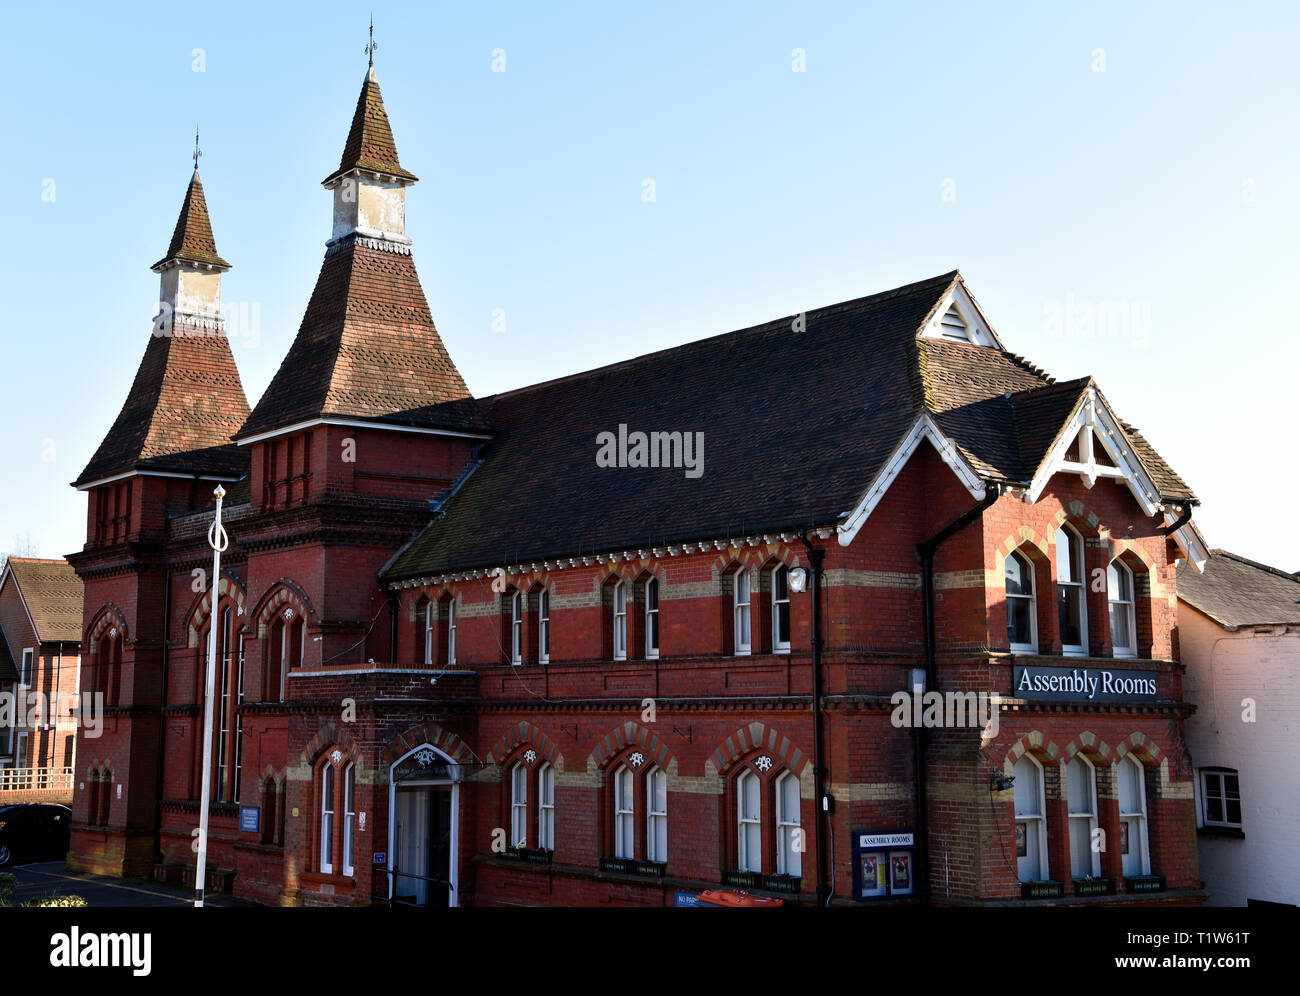 Assembly Rooms, a venue for events and exhibitions which was completed in 1880, Alton, Hampshire, UK. - Stock Image